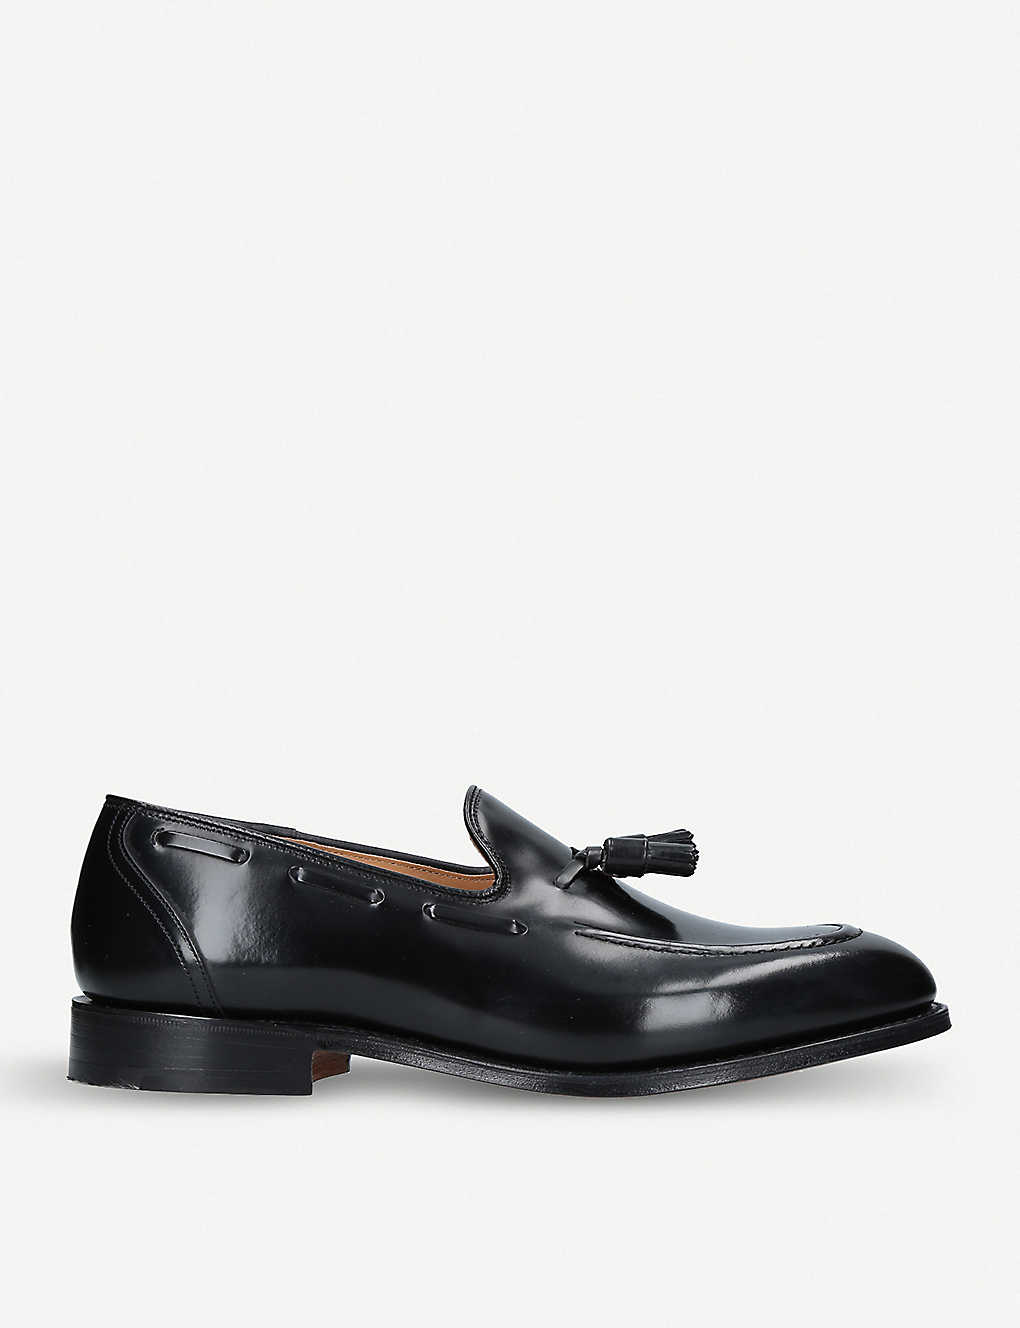 6817ca8a3129 Kingsley 2 tassel leather loafers - Black ...